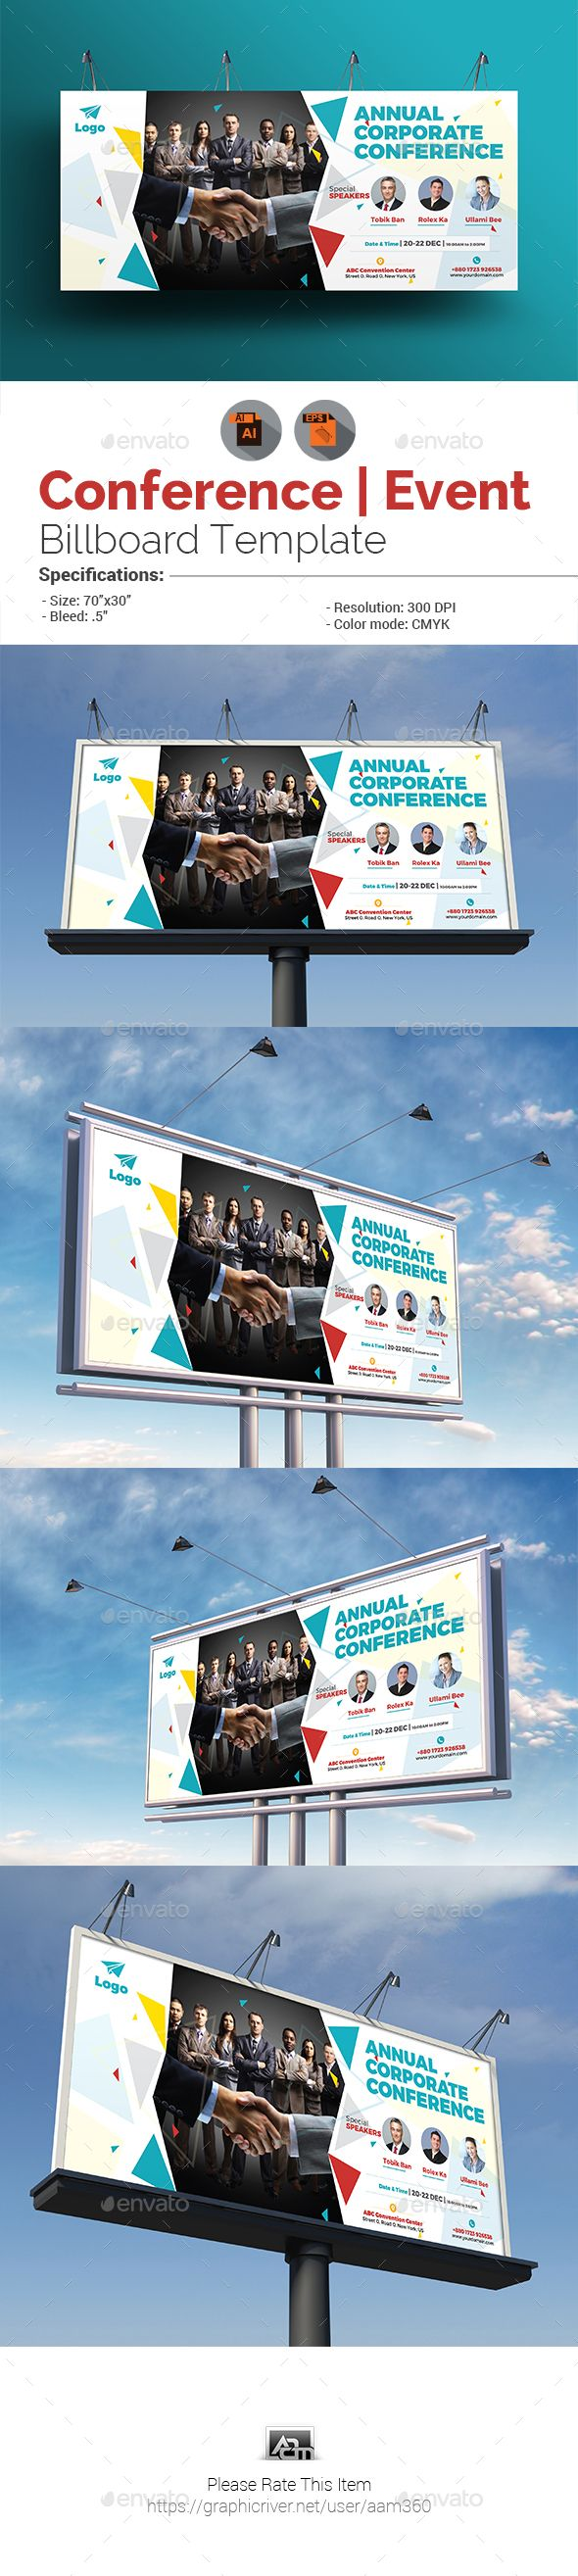 """INFORMATIONS FOR THIS BILLBOARD TEMPLATE:FEATURES:Size: 70""""x30"""" Bleed: .5""""Fully editable Illustrator AI & EPS file Files Included : adobe illustrator CS5 & CC Format (AI, EPS)Free Fonts Used Clean & Modern Design 300 DPI CMYK Help file included Font Download Links: Montserrat PLEASE NOTE :Sample pho"""